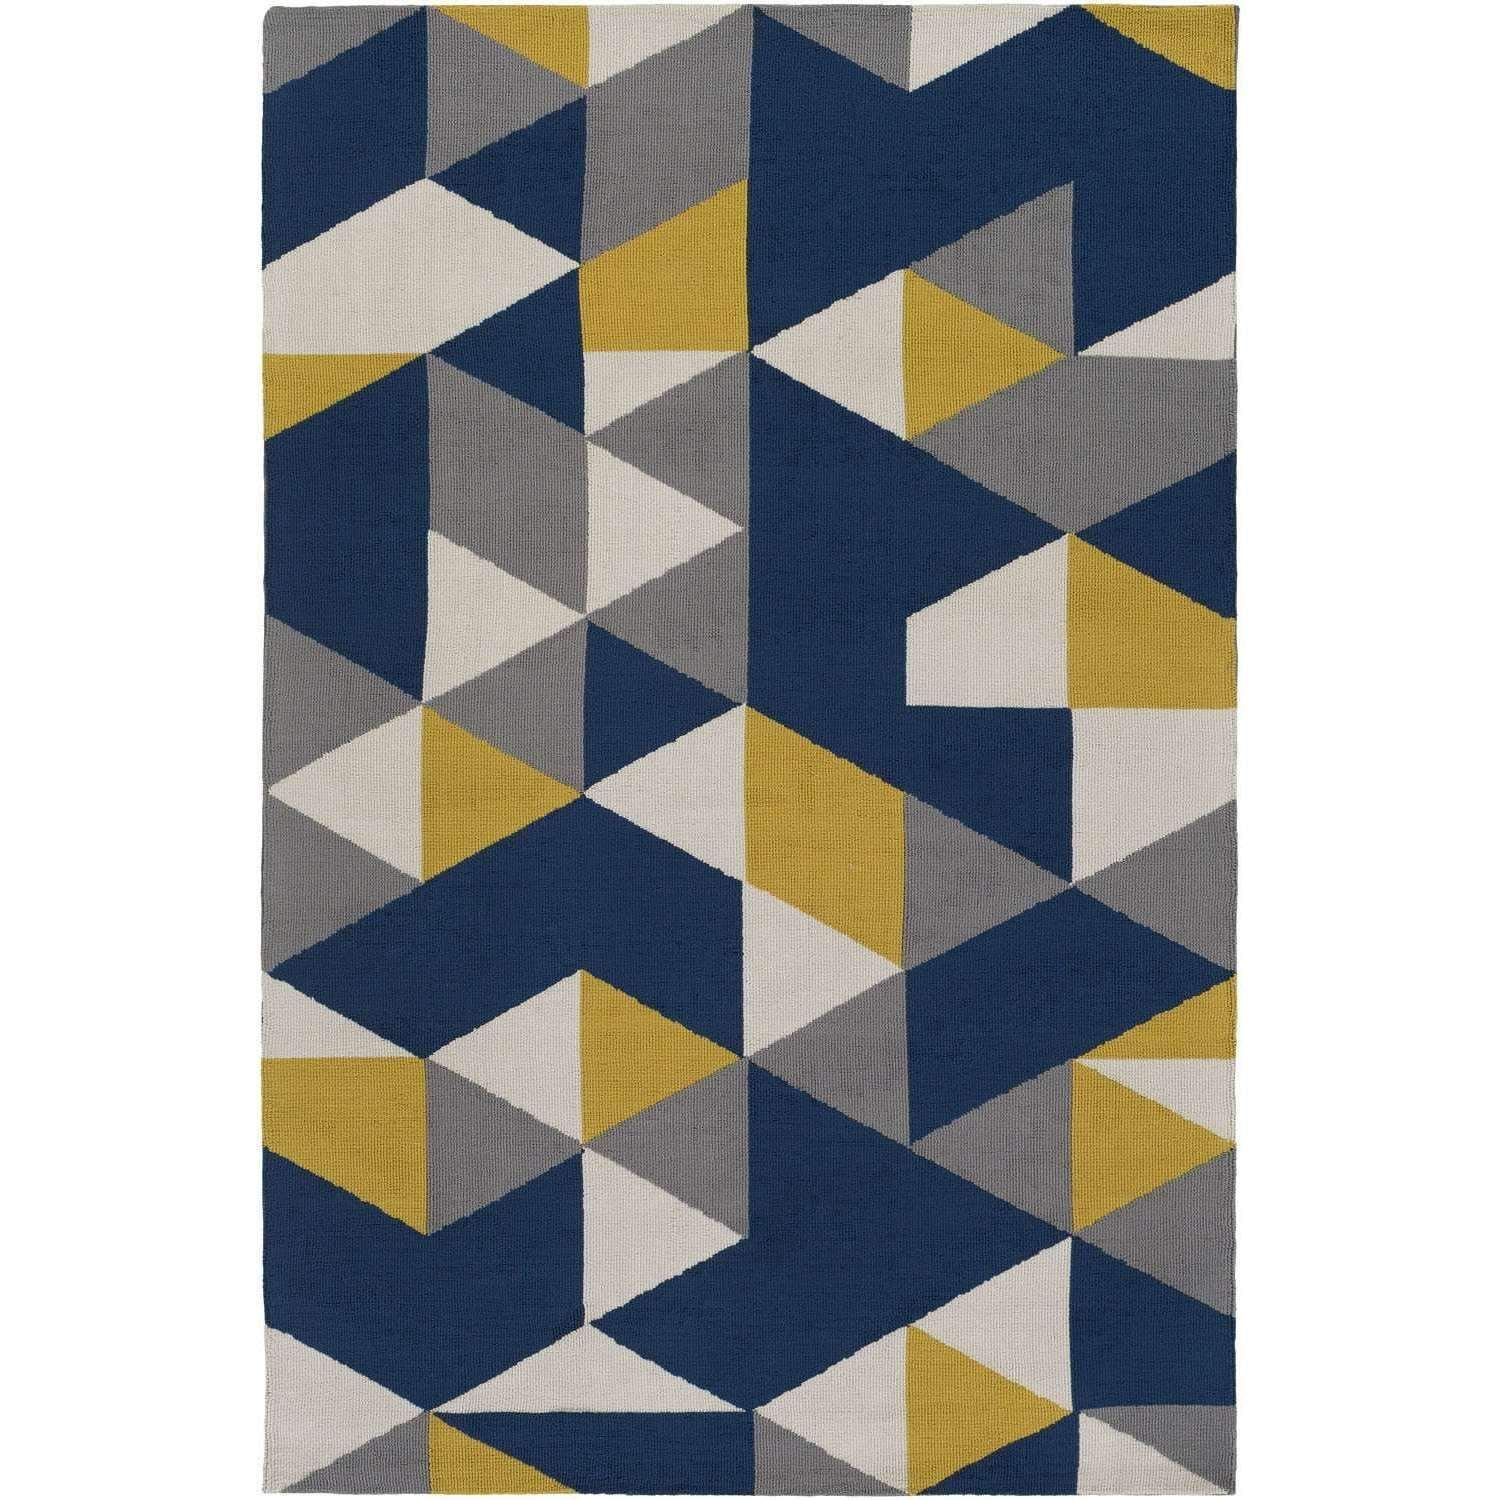 Joan Joan 6087 Navy Blue Yellow Gray Contemporary Rug Blue And Mustard Living Room Blue And Yellow Living Room Blue Yellow Grey